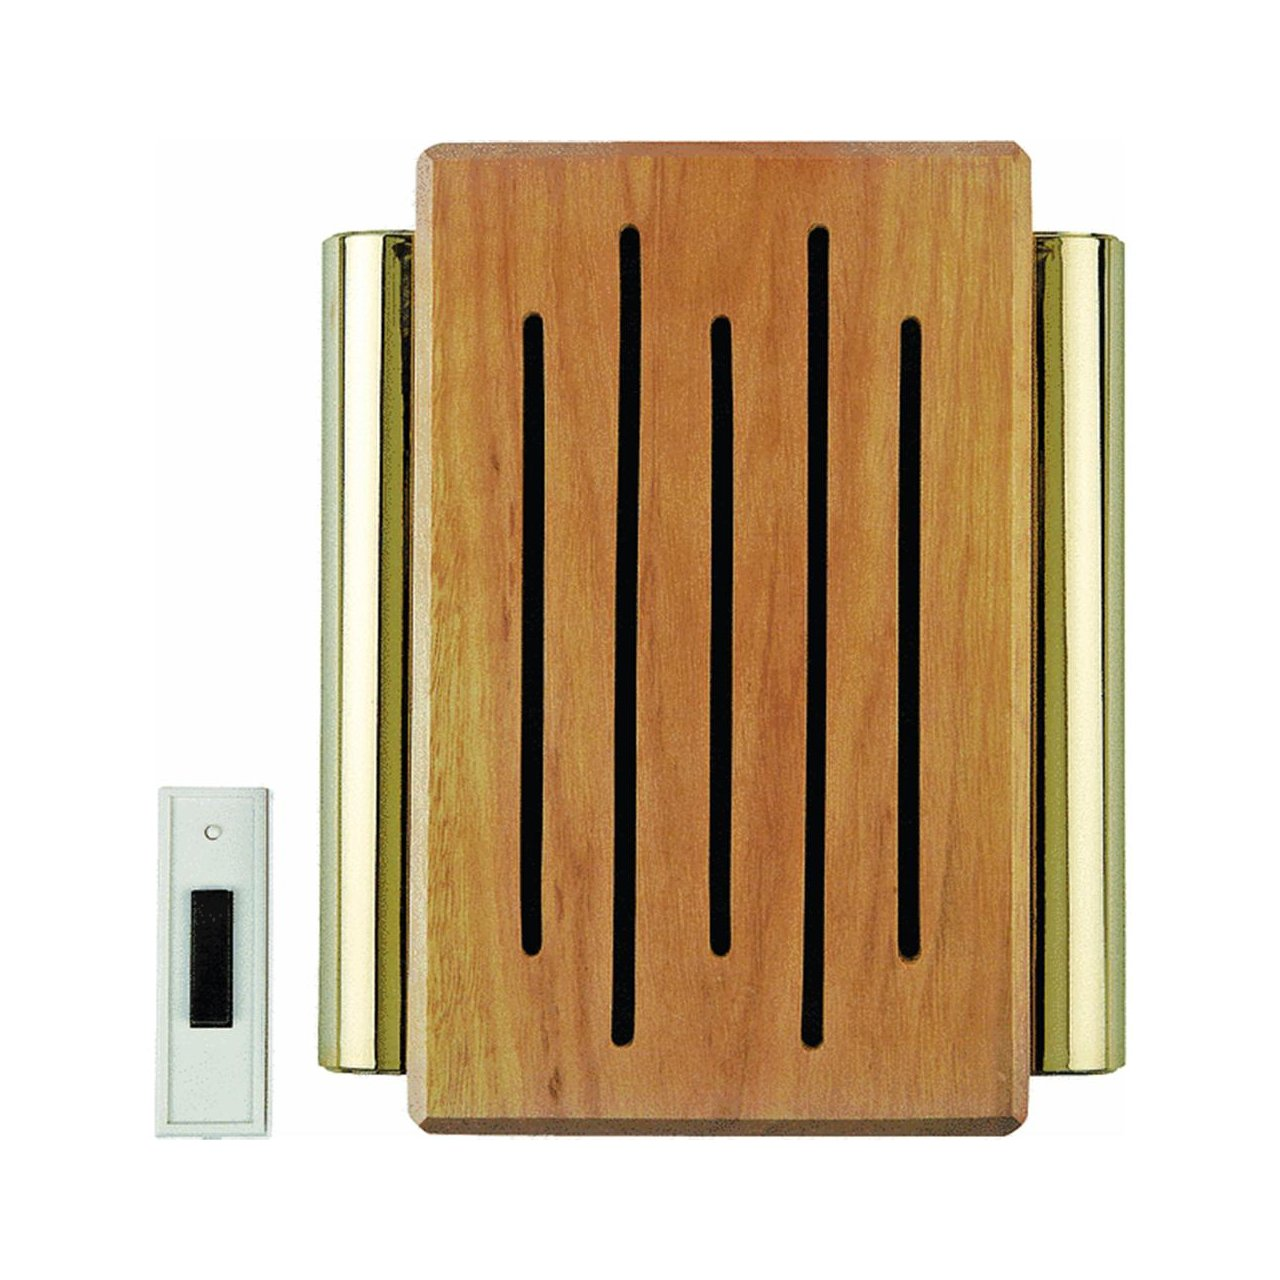 Carlon Lamson & Sessons Rc3306f Wood And Brass Wireless Door Chime  Wireless  Doorbell  Amazon